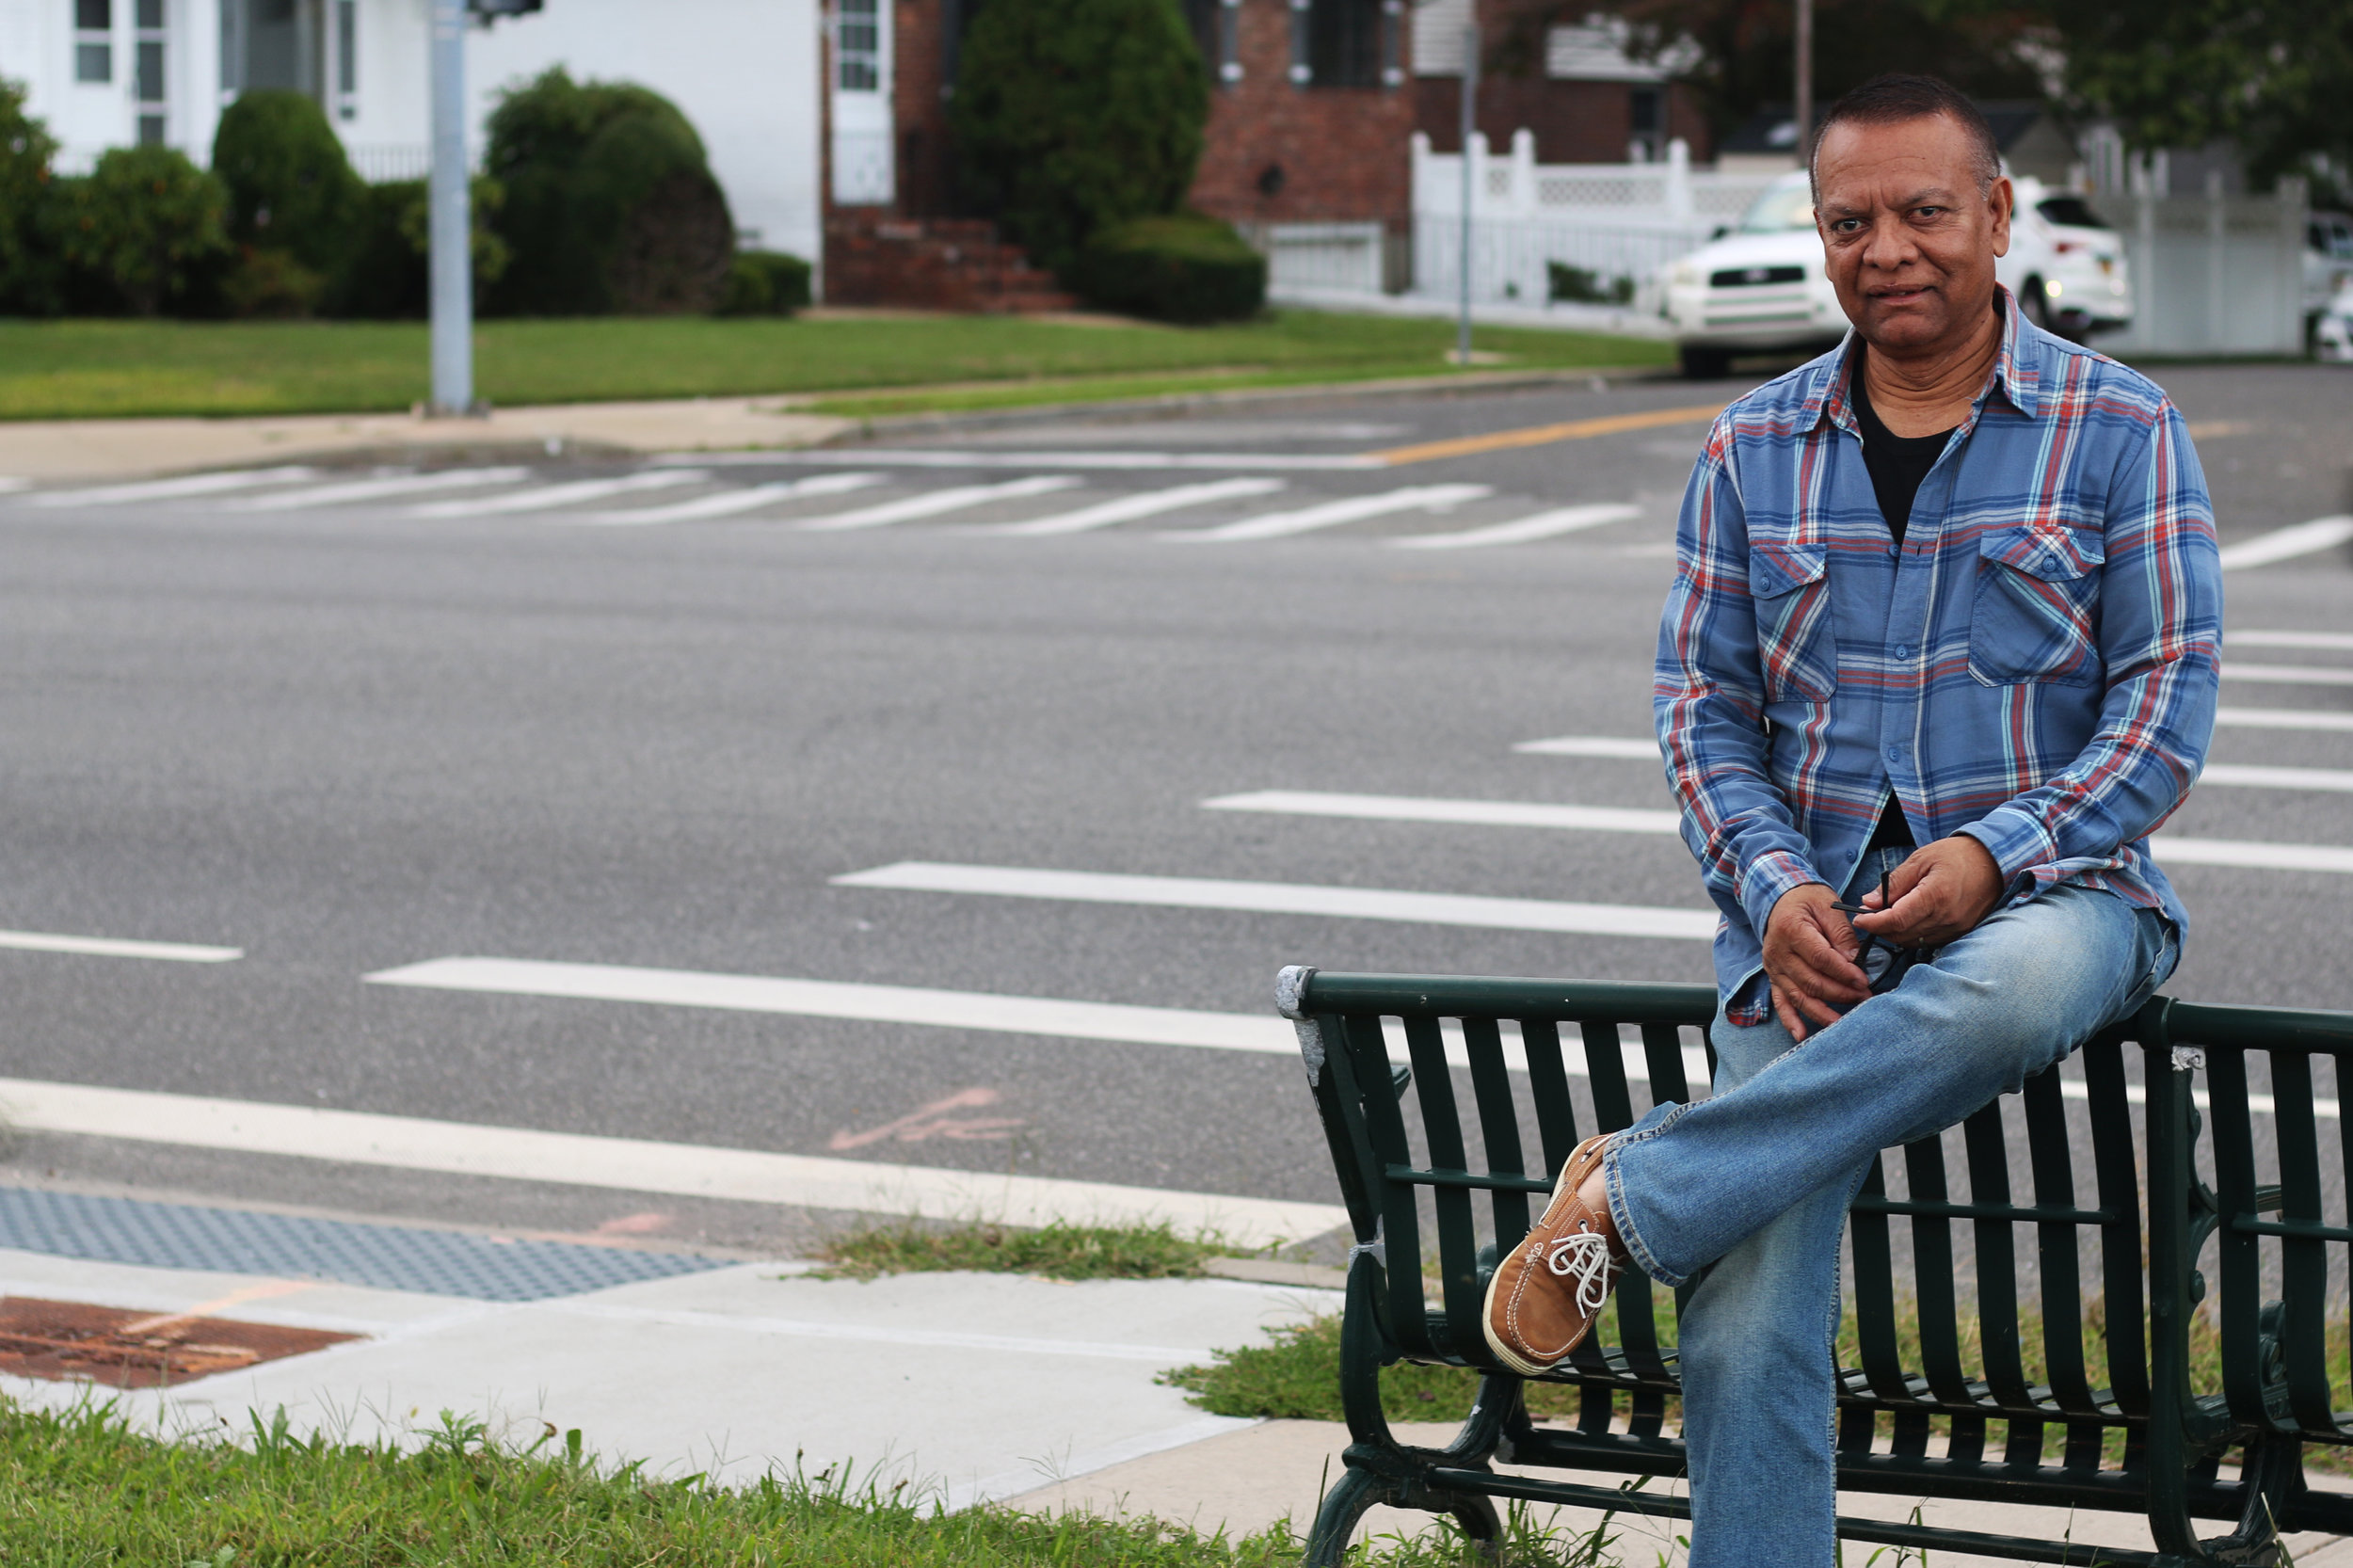 Stanley Praimnath sits in Elmont, N.Y, the Long Island town where he lived in 2001. Photo by Micah Danney.